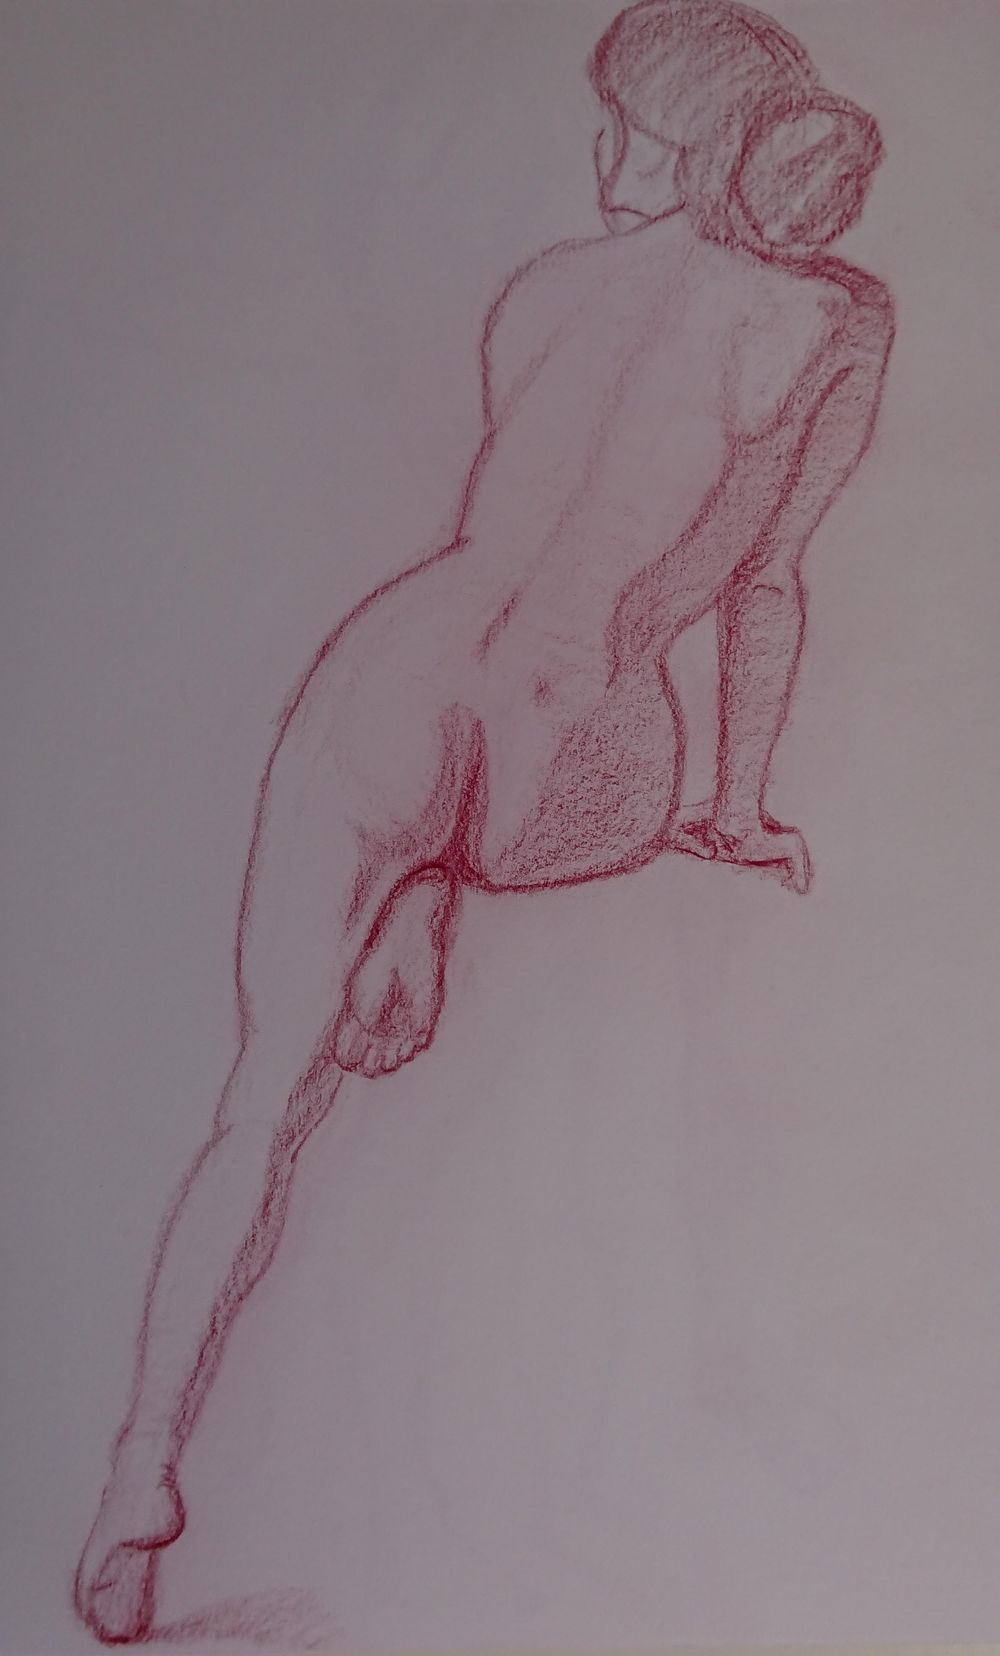 Gesture and the stuff I learned! - image 2 - student project